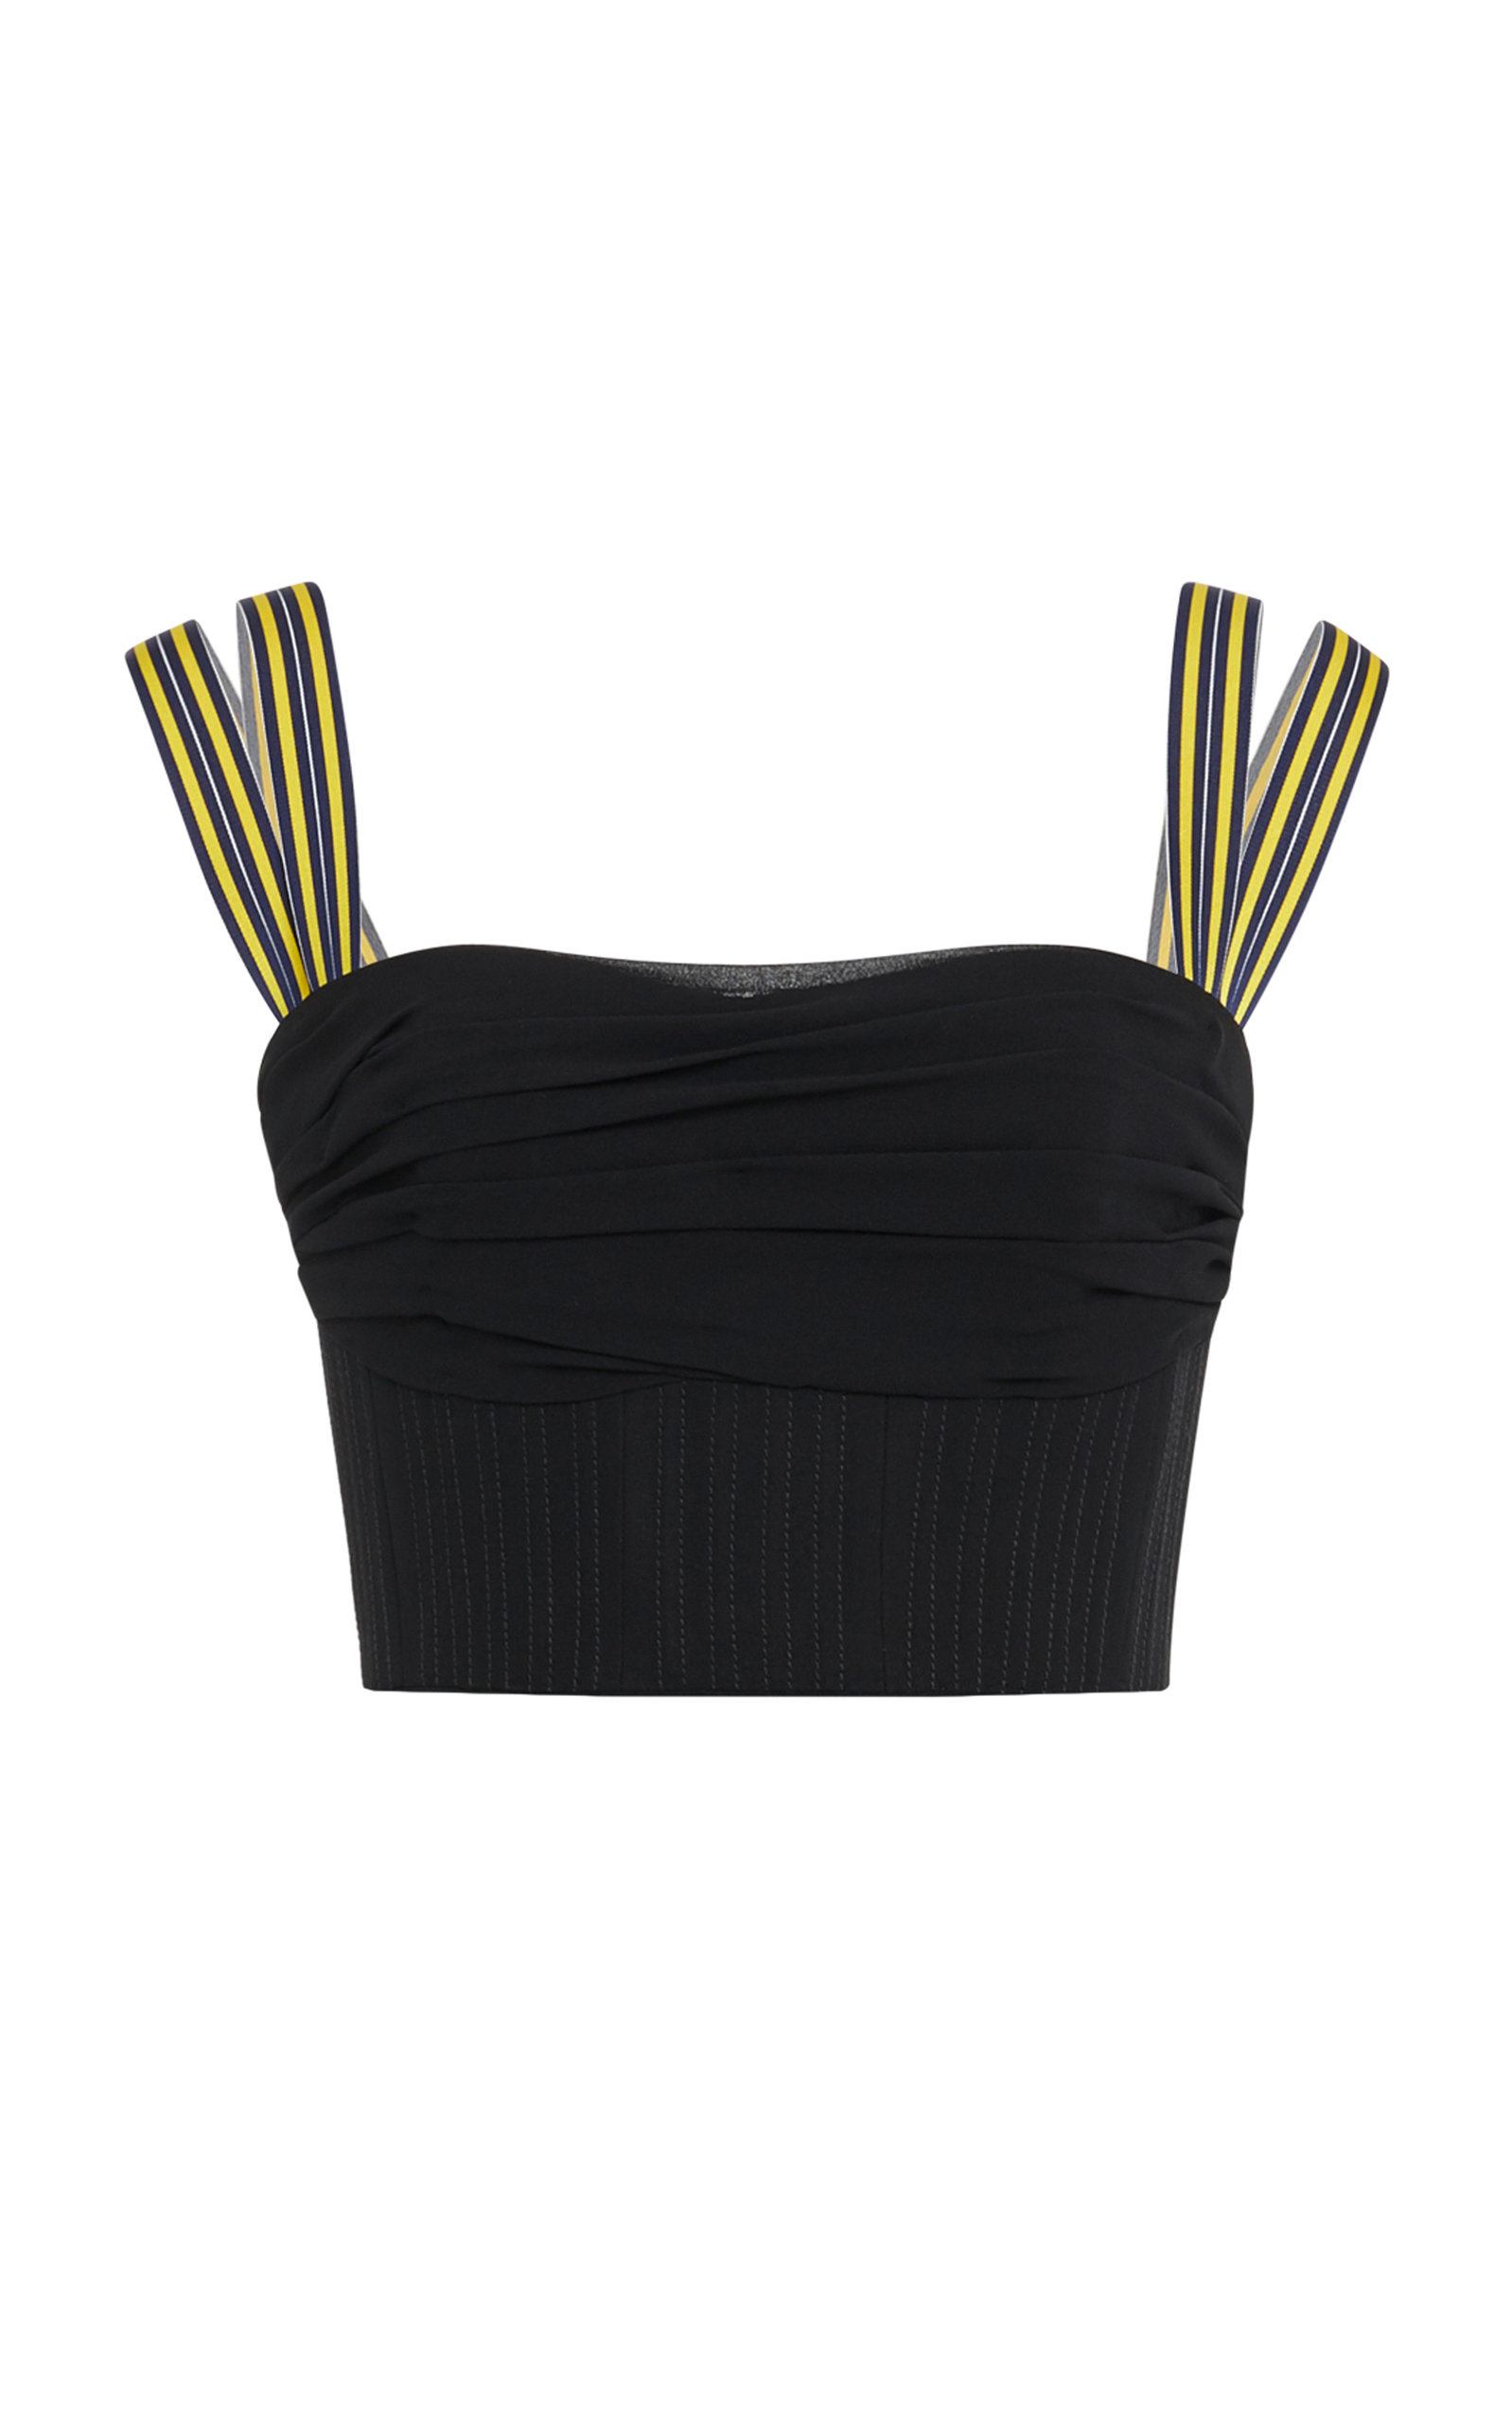 RACHEL GILBERT SOEKIE CROP TOP